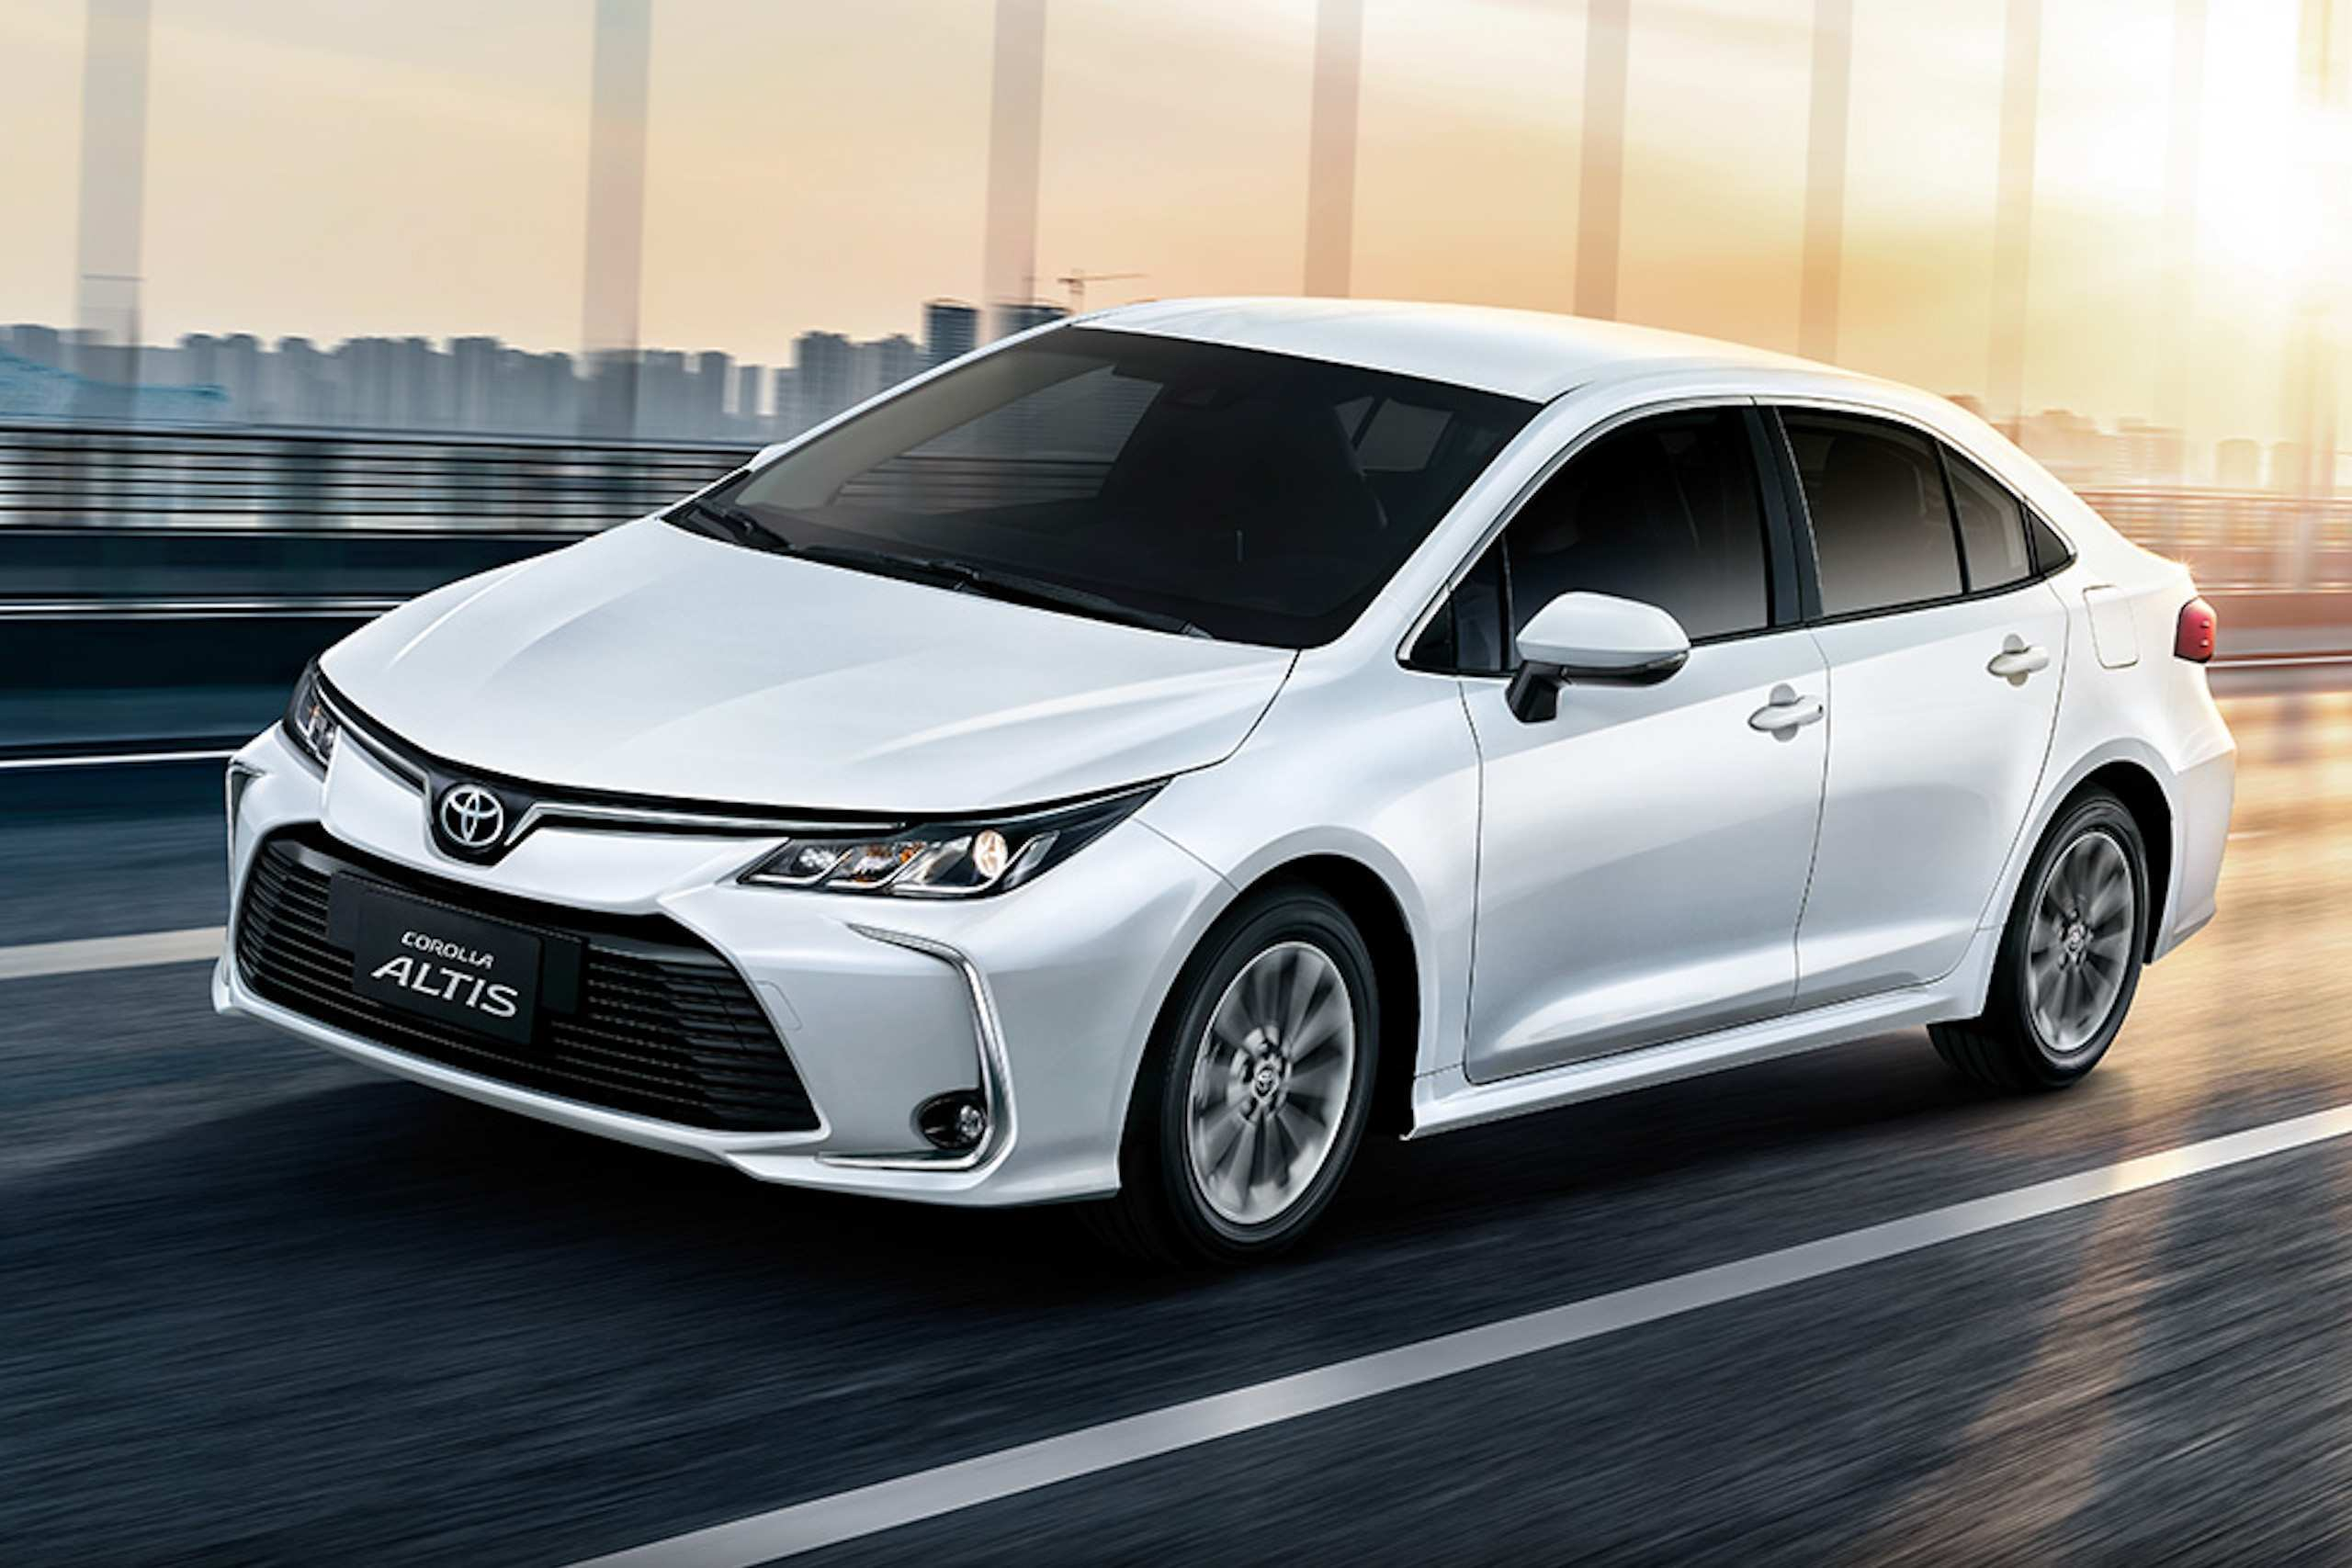 38 All New 2020 Toyota Altis Release Date And Concept